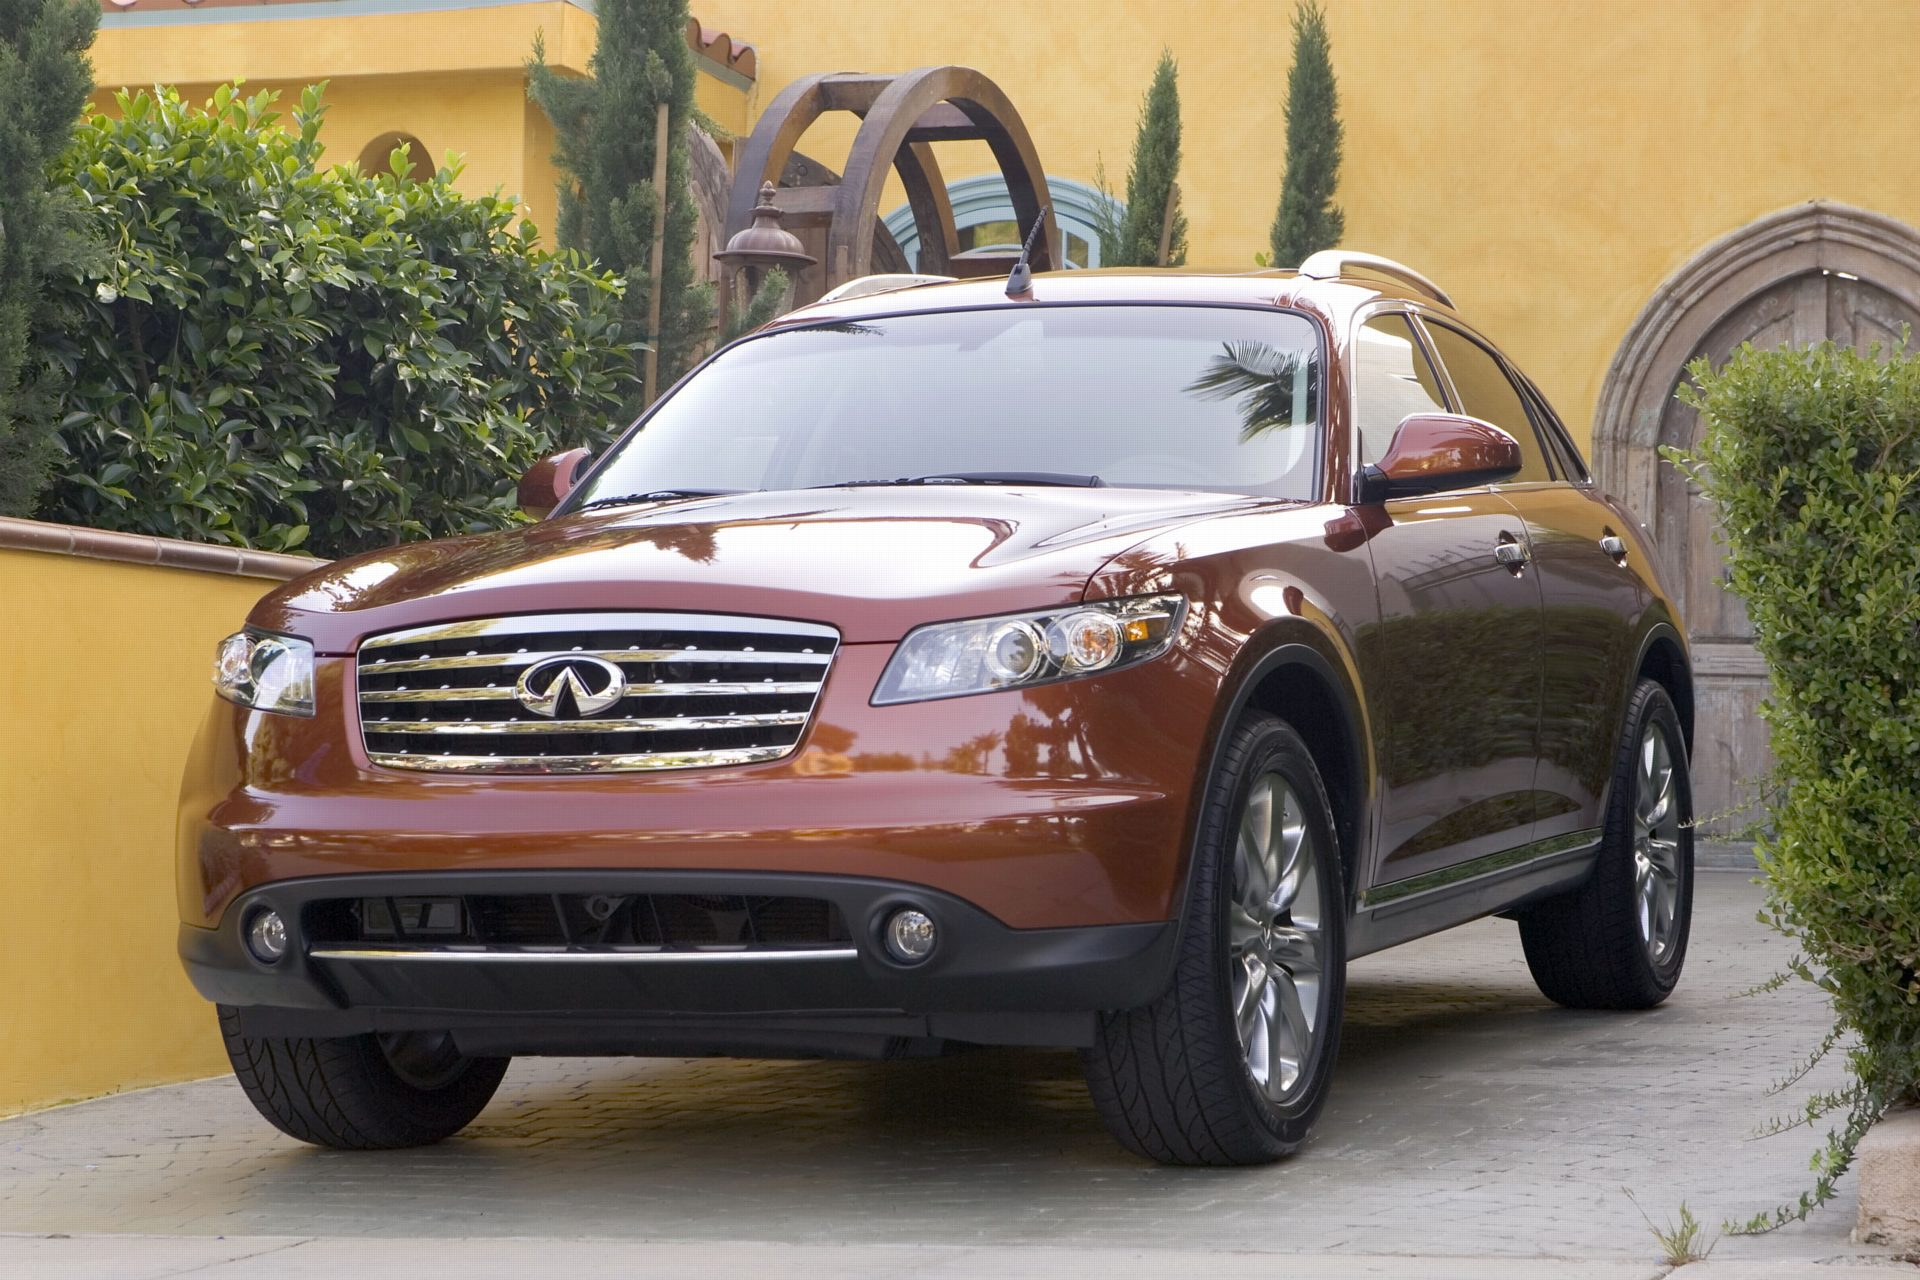 2007 infiniti fx pictures history value research news conceptcarz com